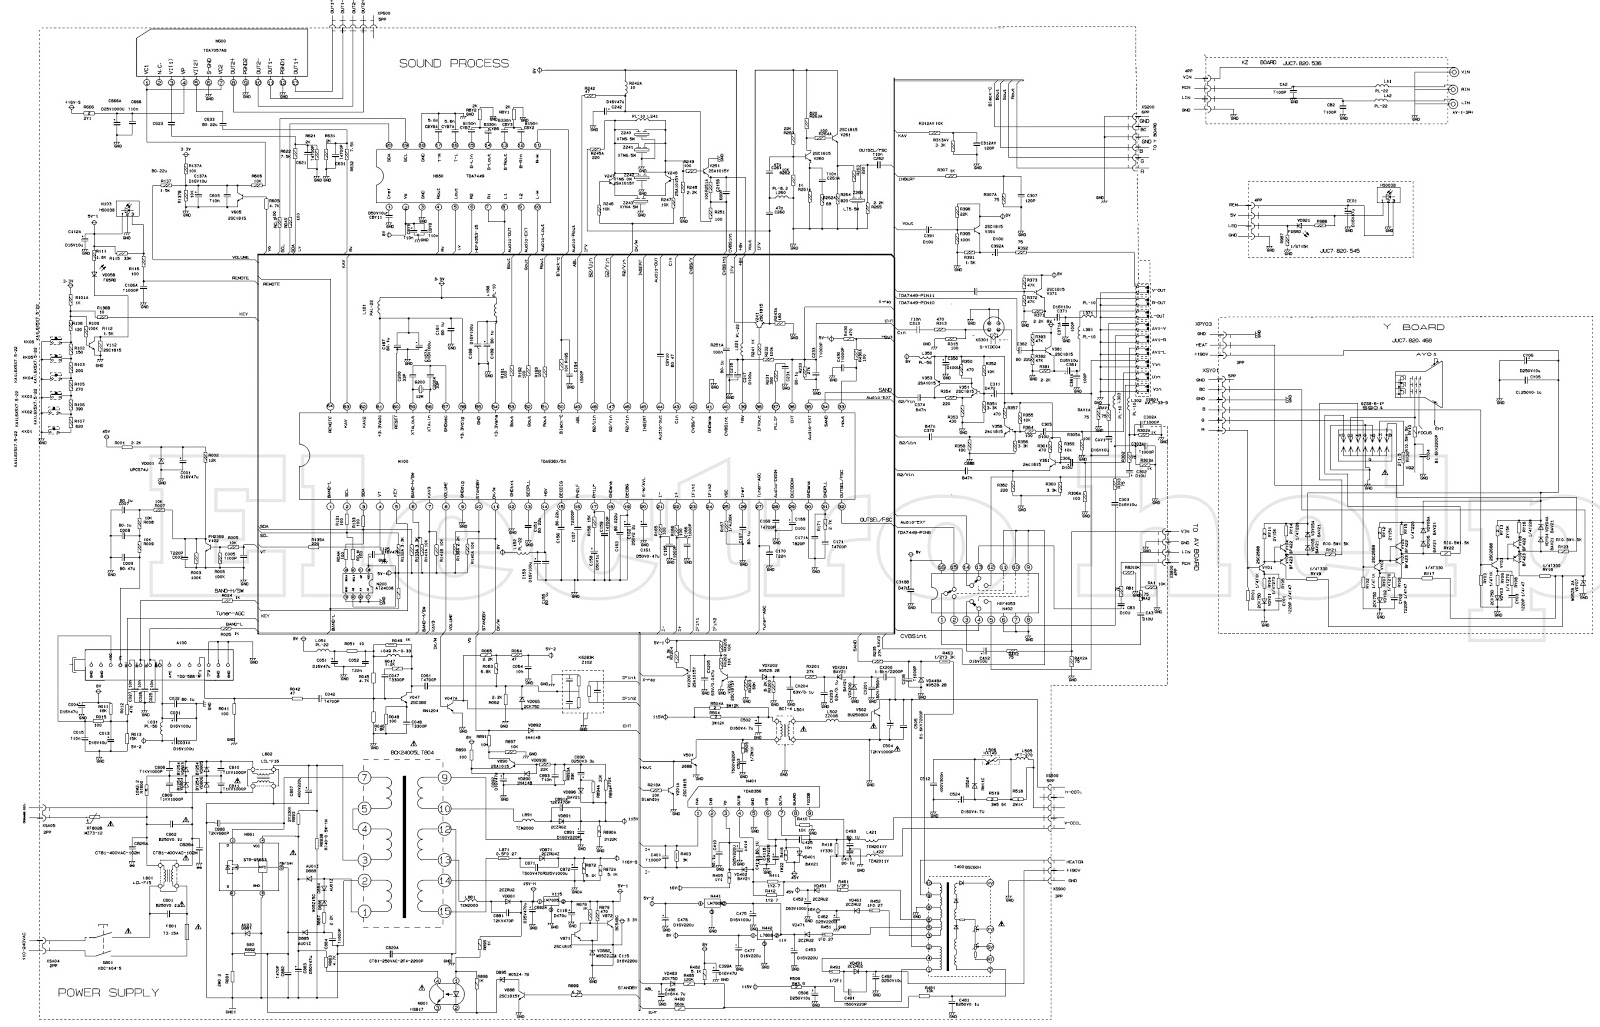 SCHEMATIC rolsen 21c19 ctv schematic using str g5663 tda938x 5x system Basic Electrical Wiring Diagrams at reclaimingppi.co